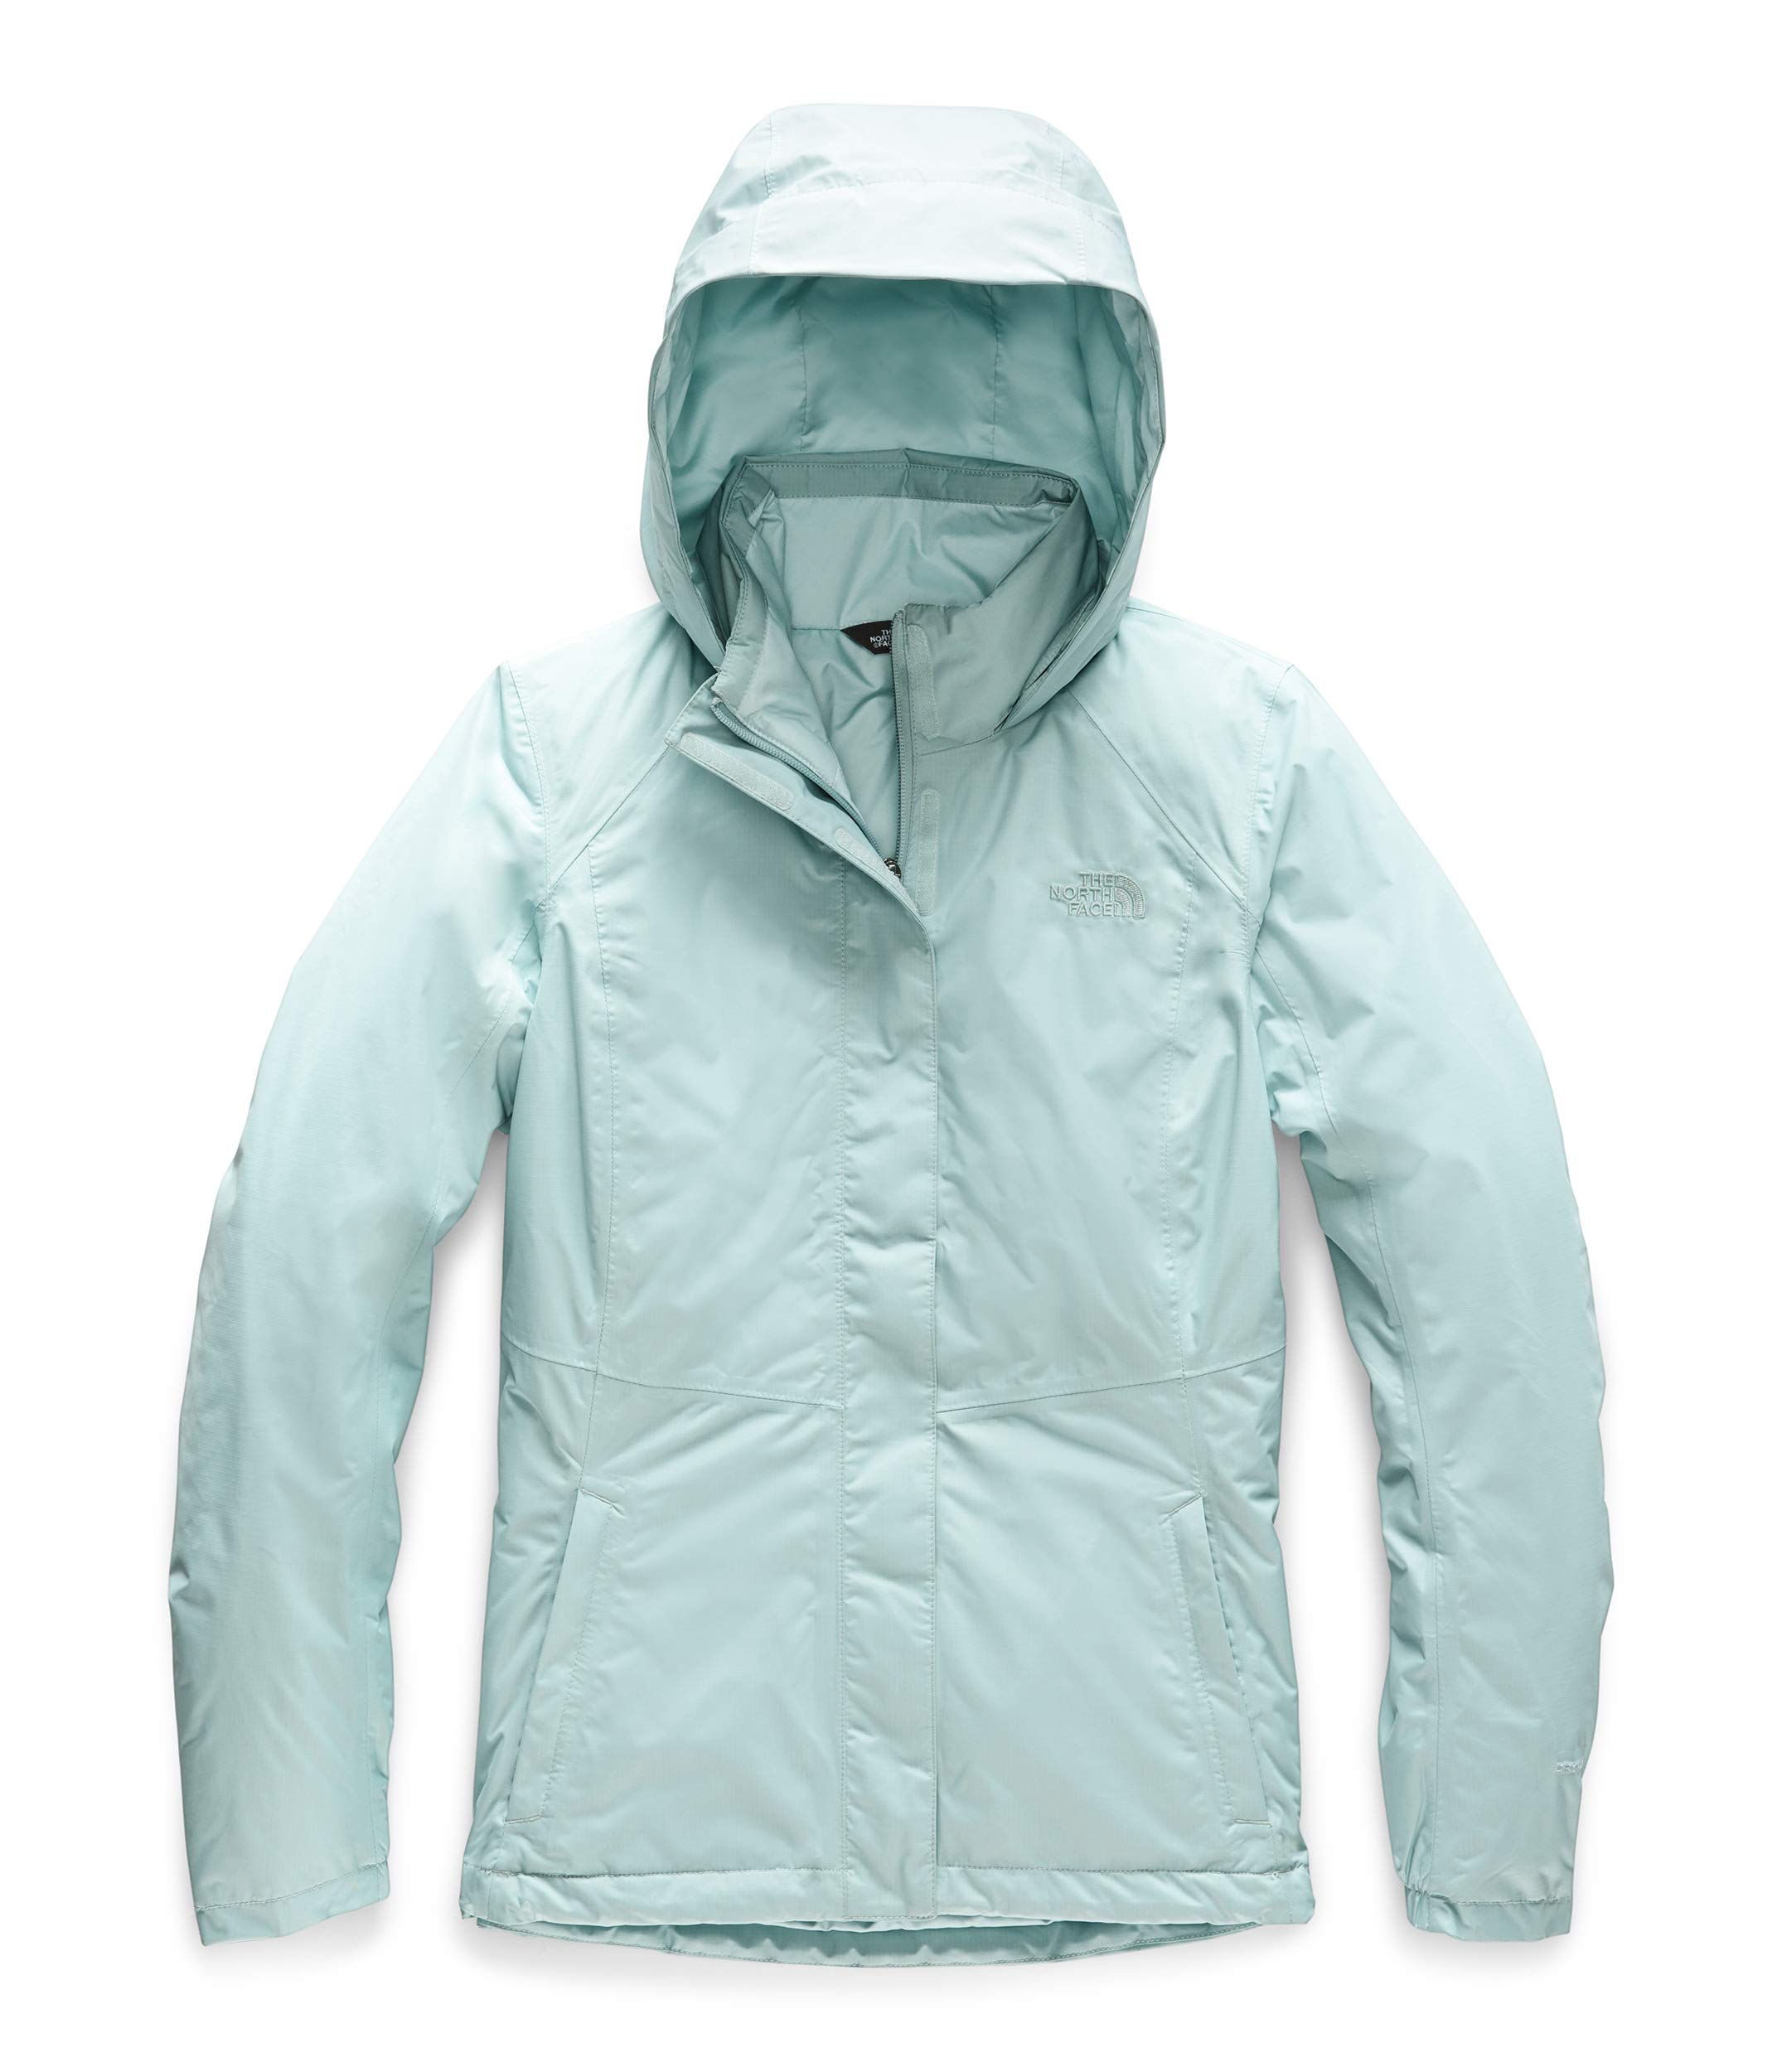 The North Face Women's Resolve Insulated Jacket by The North Face